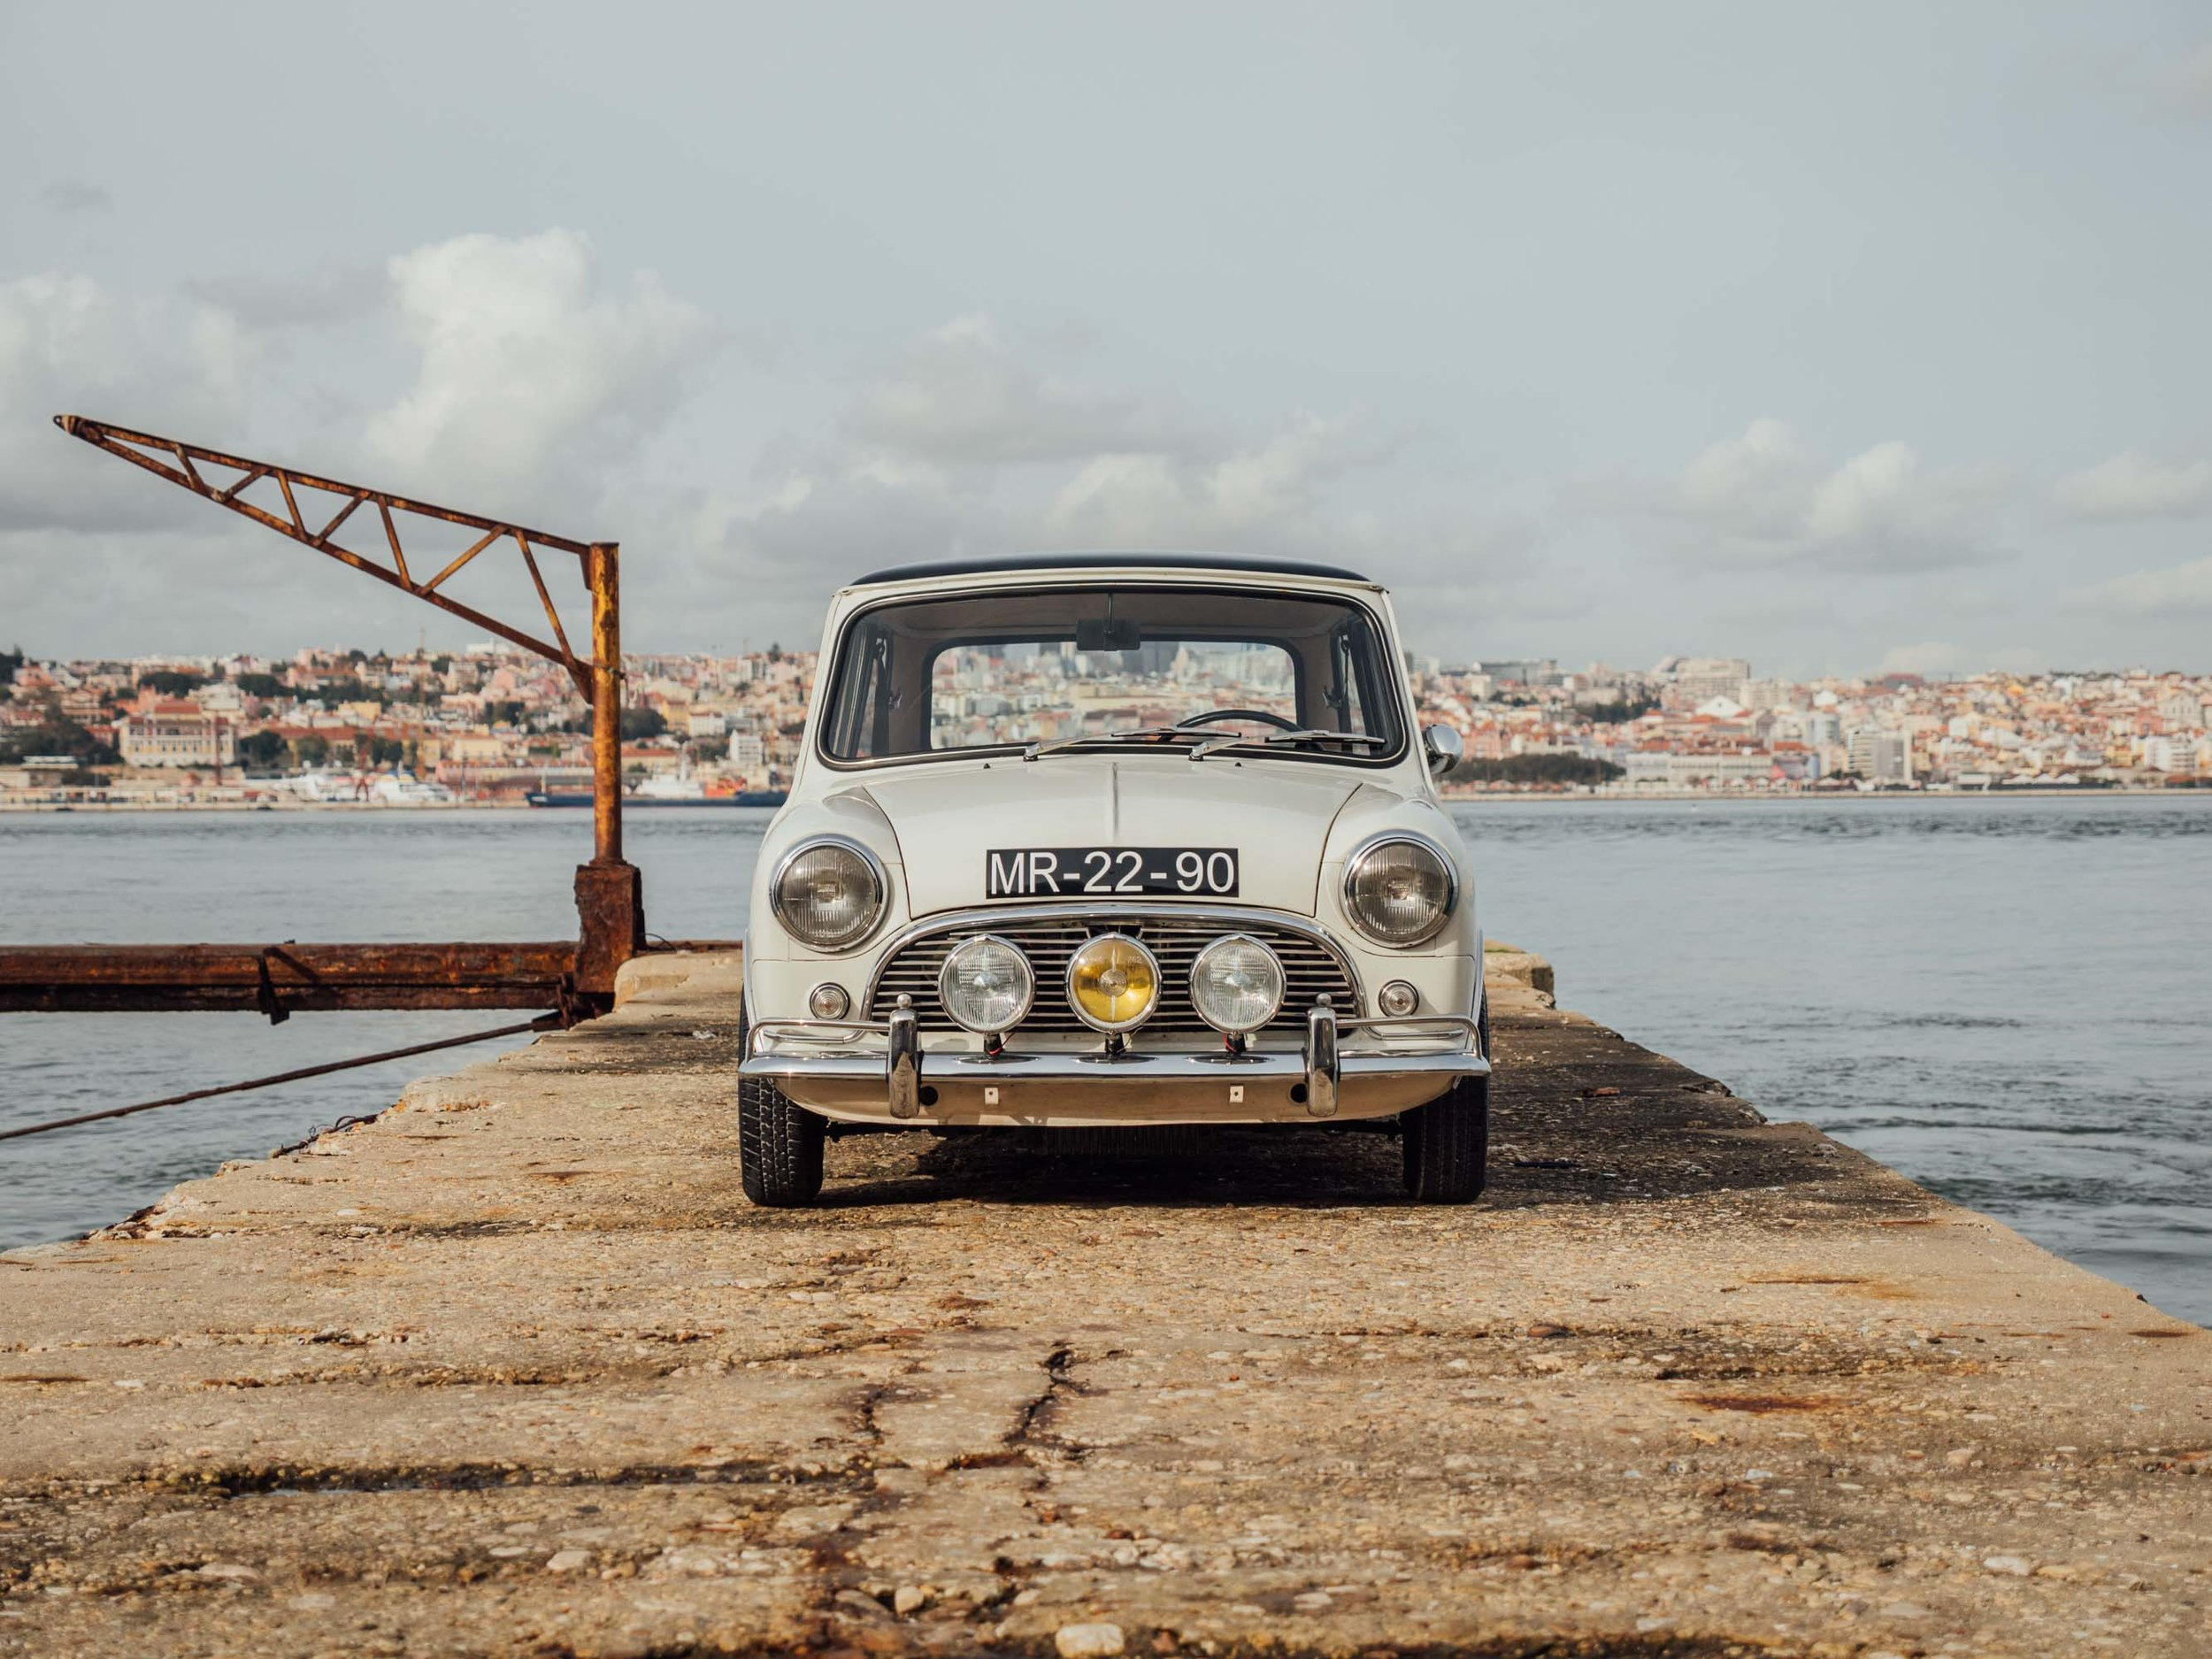 coolnvintage Mini Cooper S (21 of 63).jpg